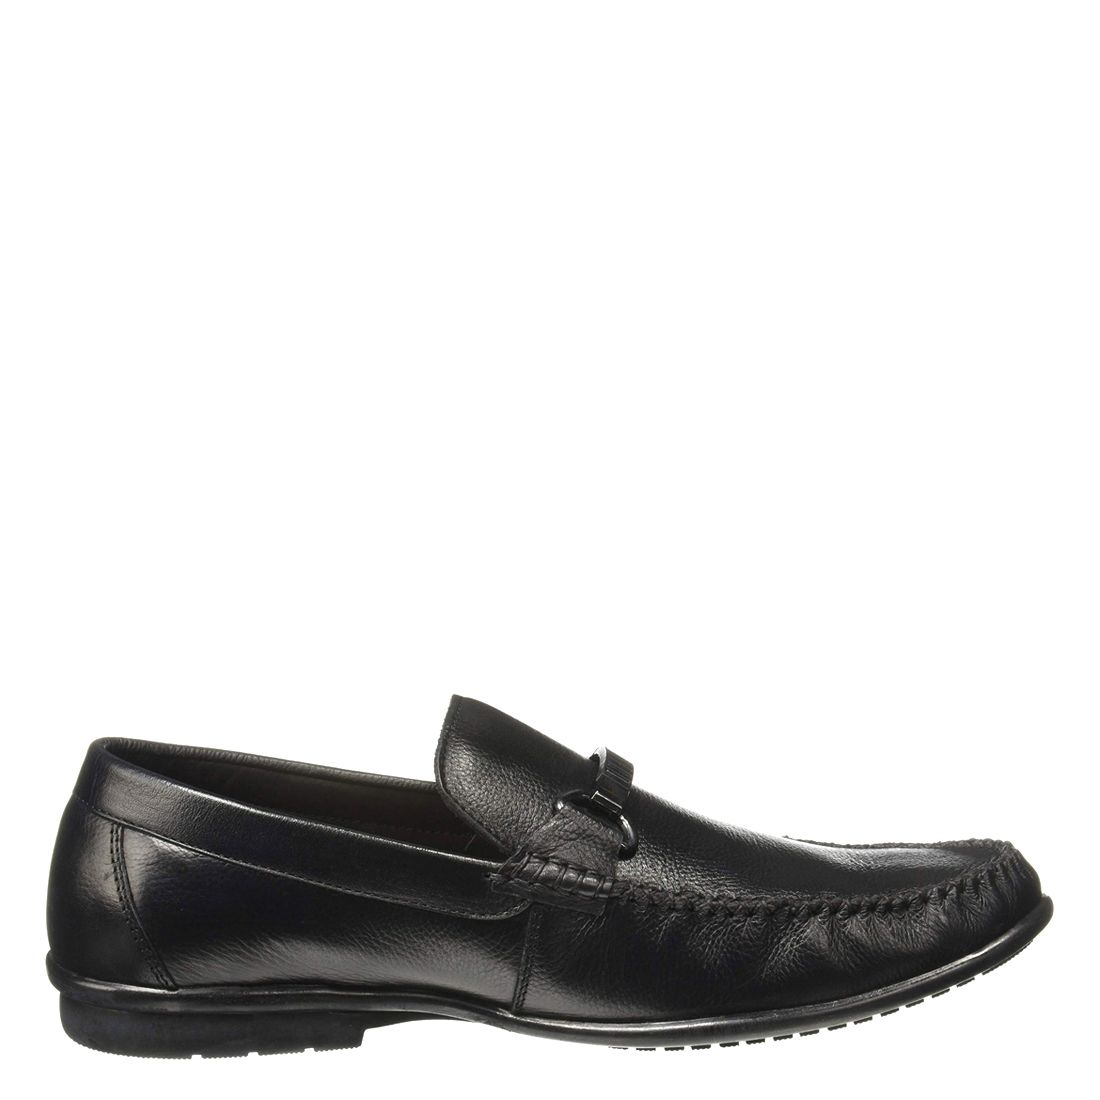 LEECOOPER BLACK CASUAL LOAFERS FOR MEN LC2339B